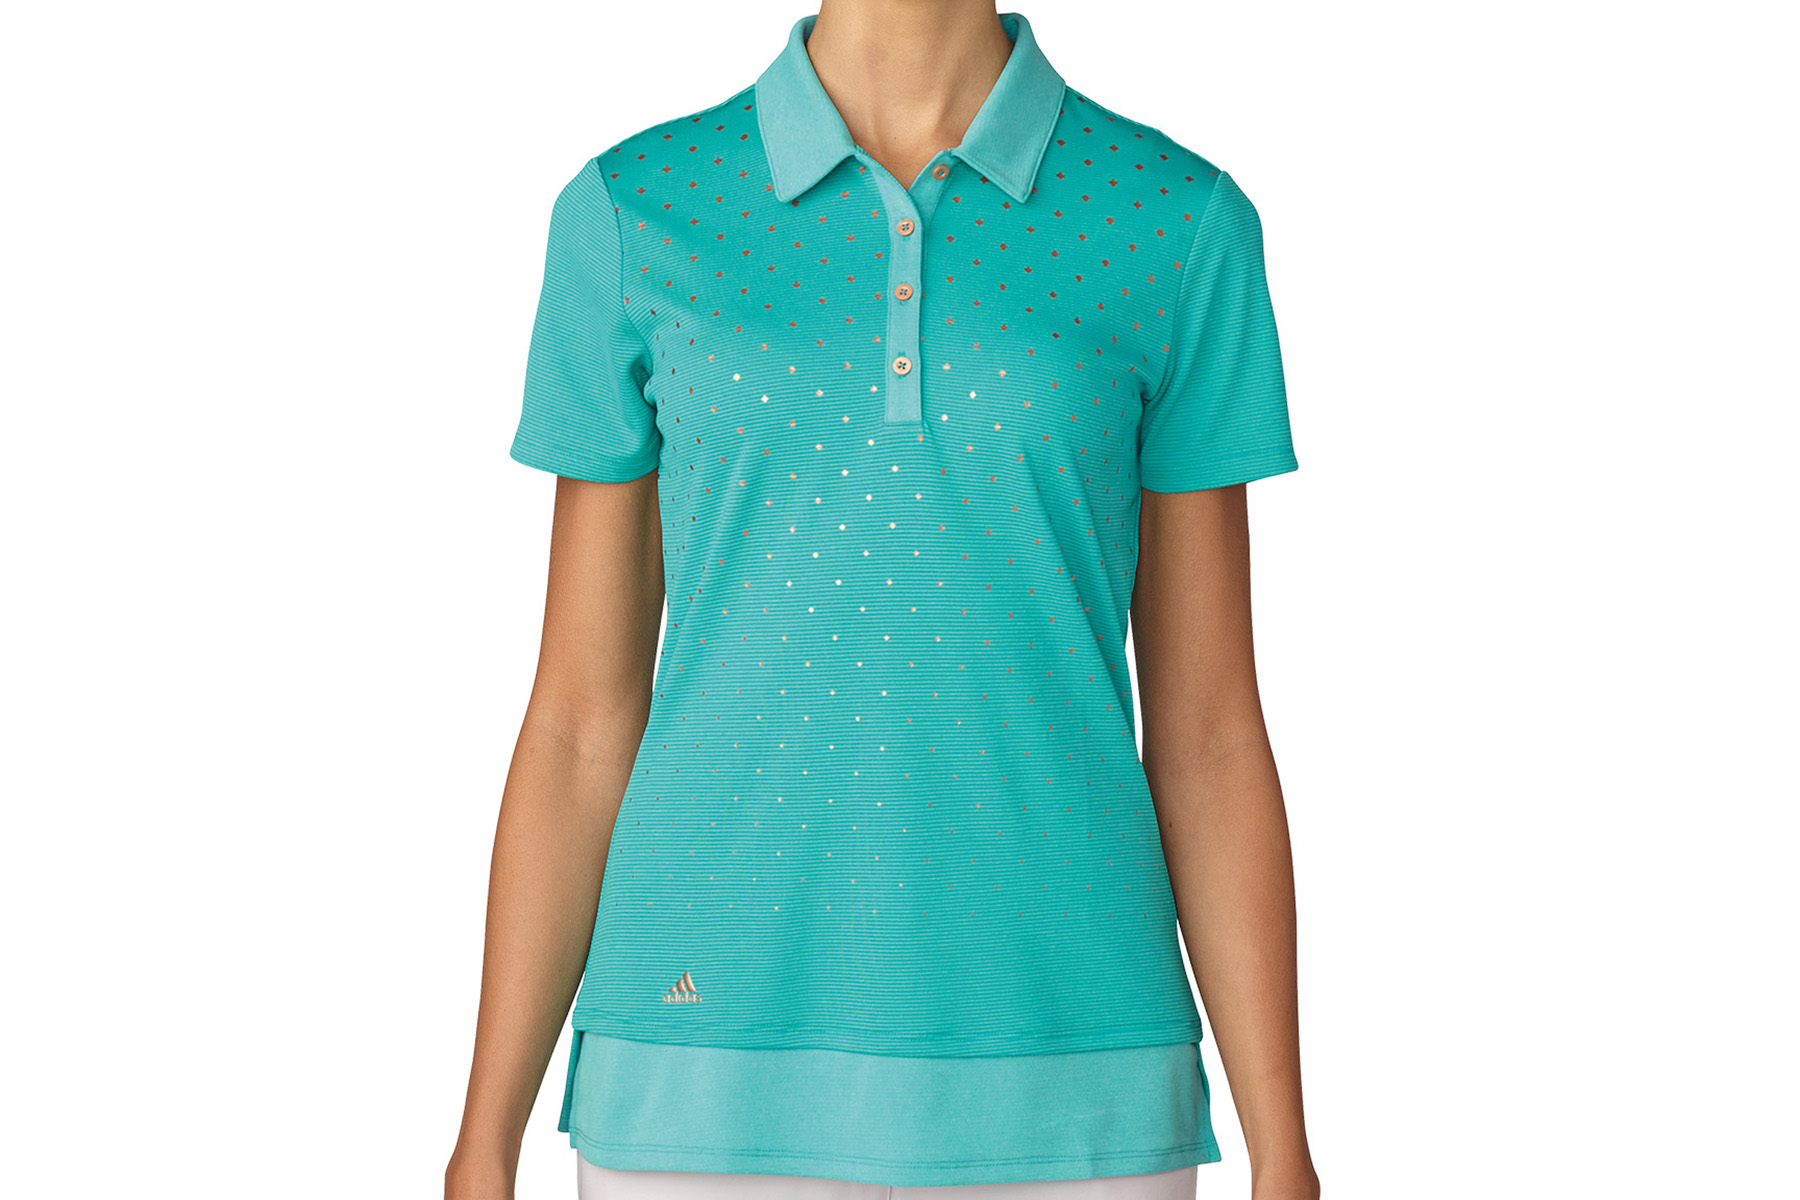 Adidas golf printed ladies polo shirt from american golf for Personalised golf shirts uk